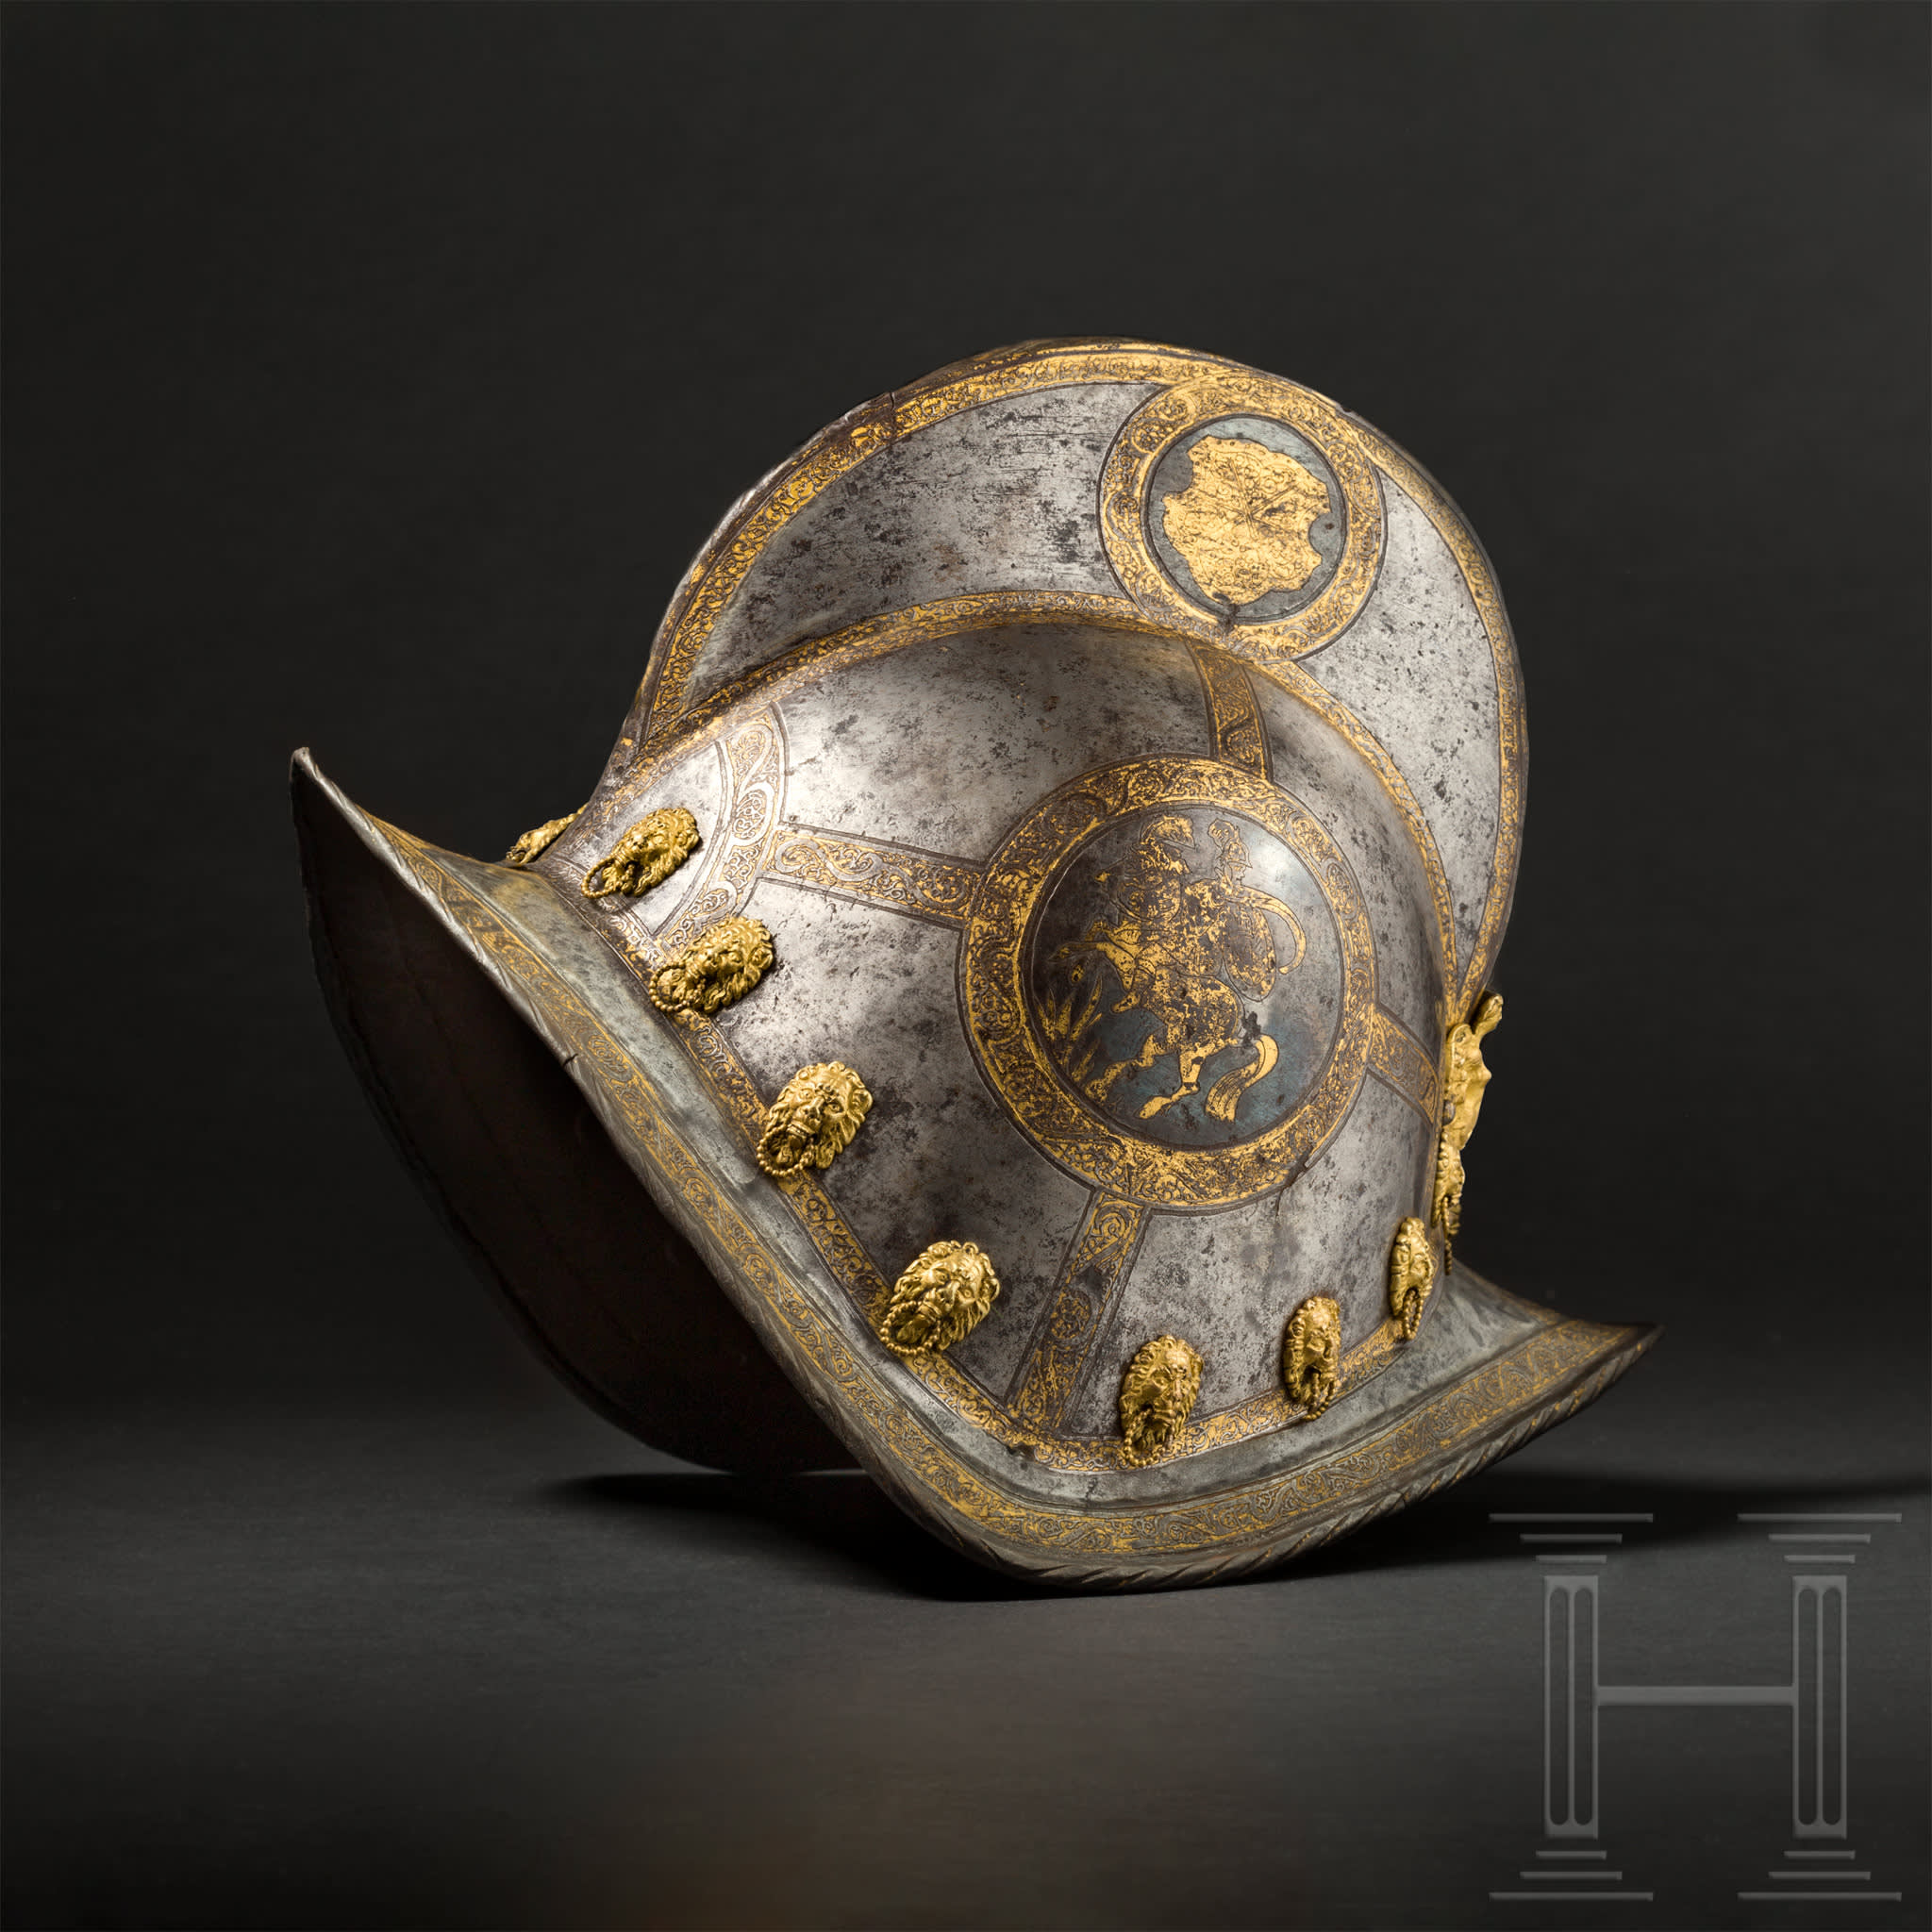 Etched and Gilded Morion, end of the 16th century. Photo: Hermann Historica